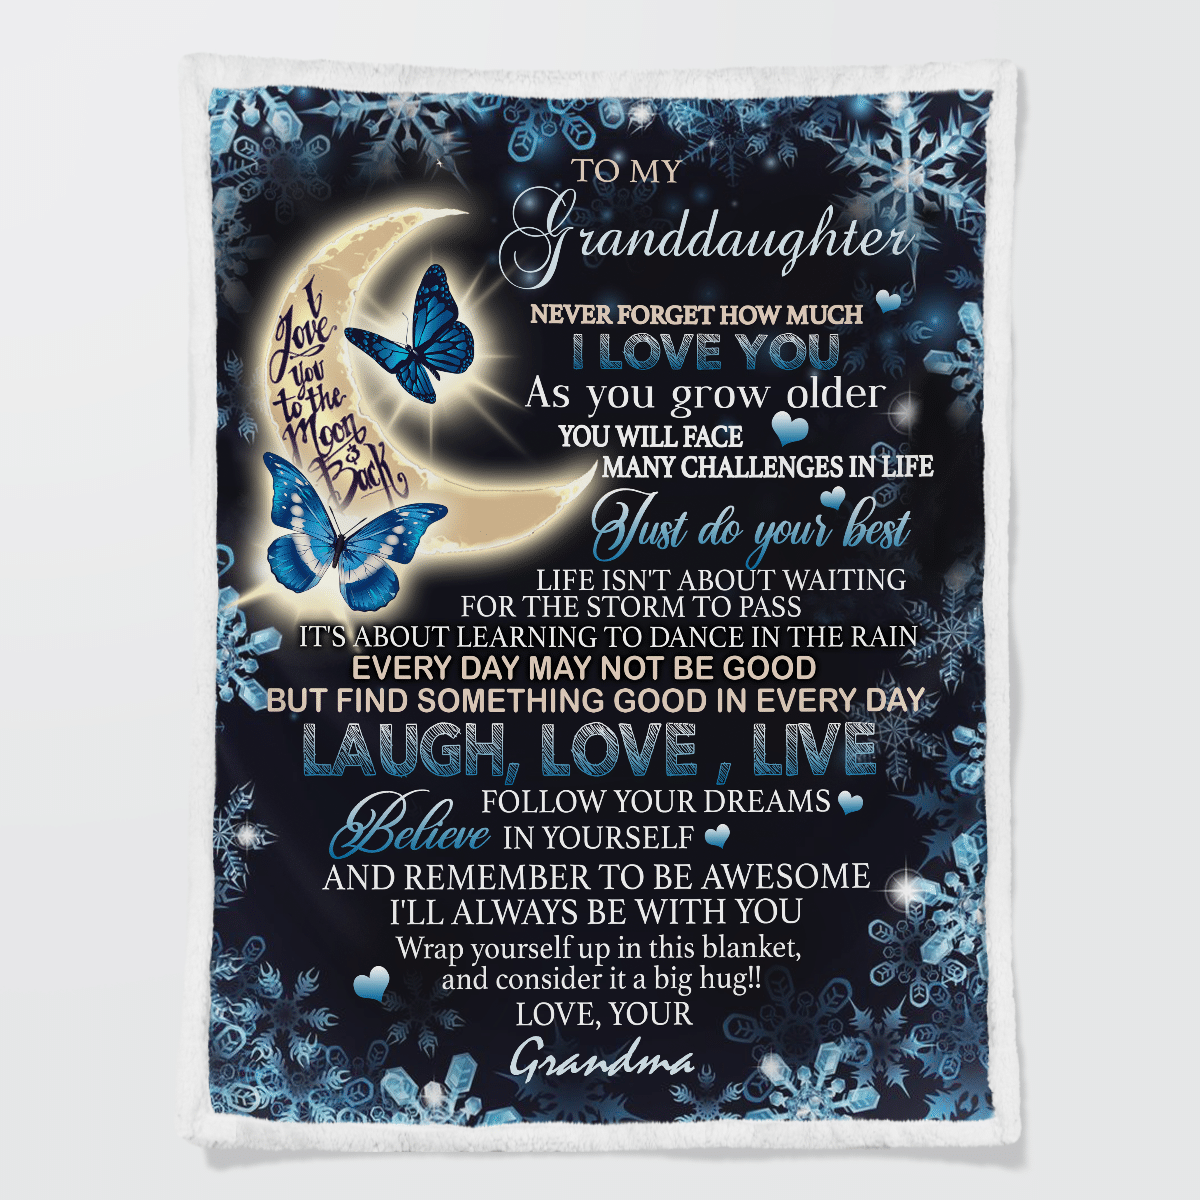 Love To Your Granddaughter To the moon and back butterfly blanket